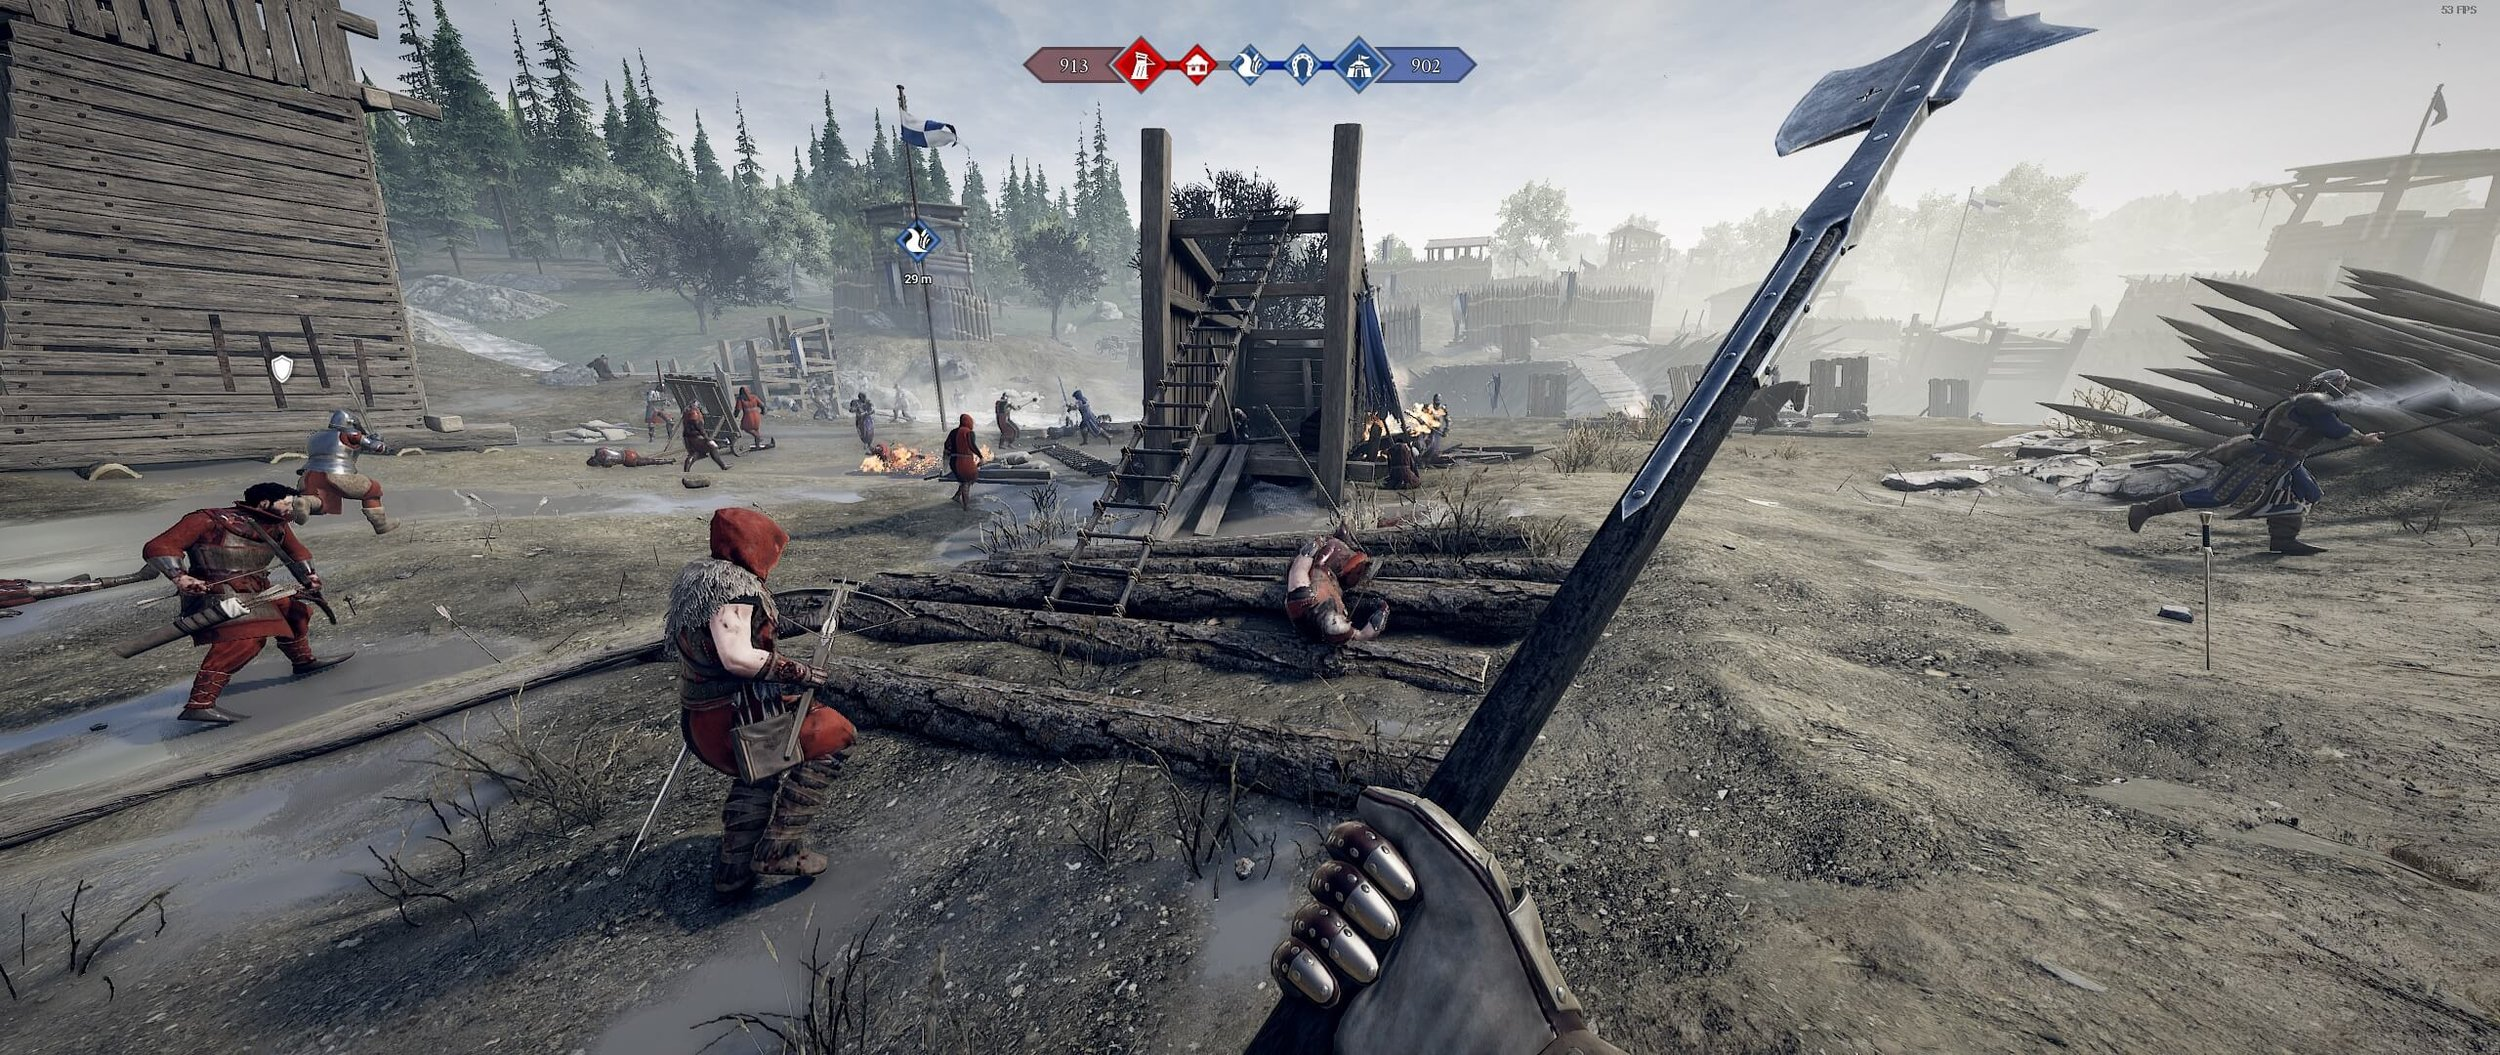 The Best Fov Field Of View For Mordhau Esports Tales